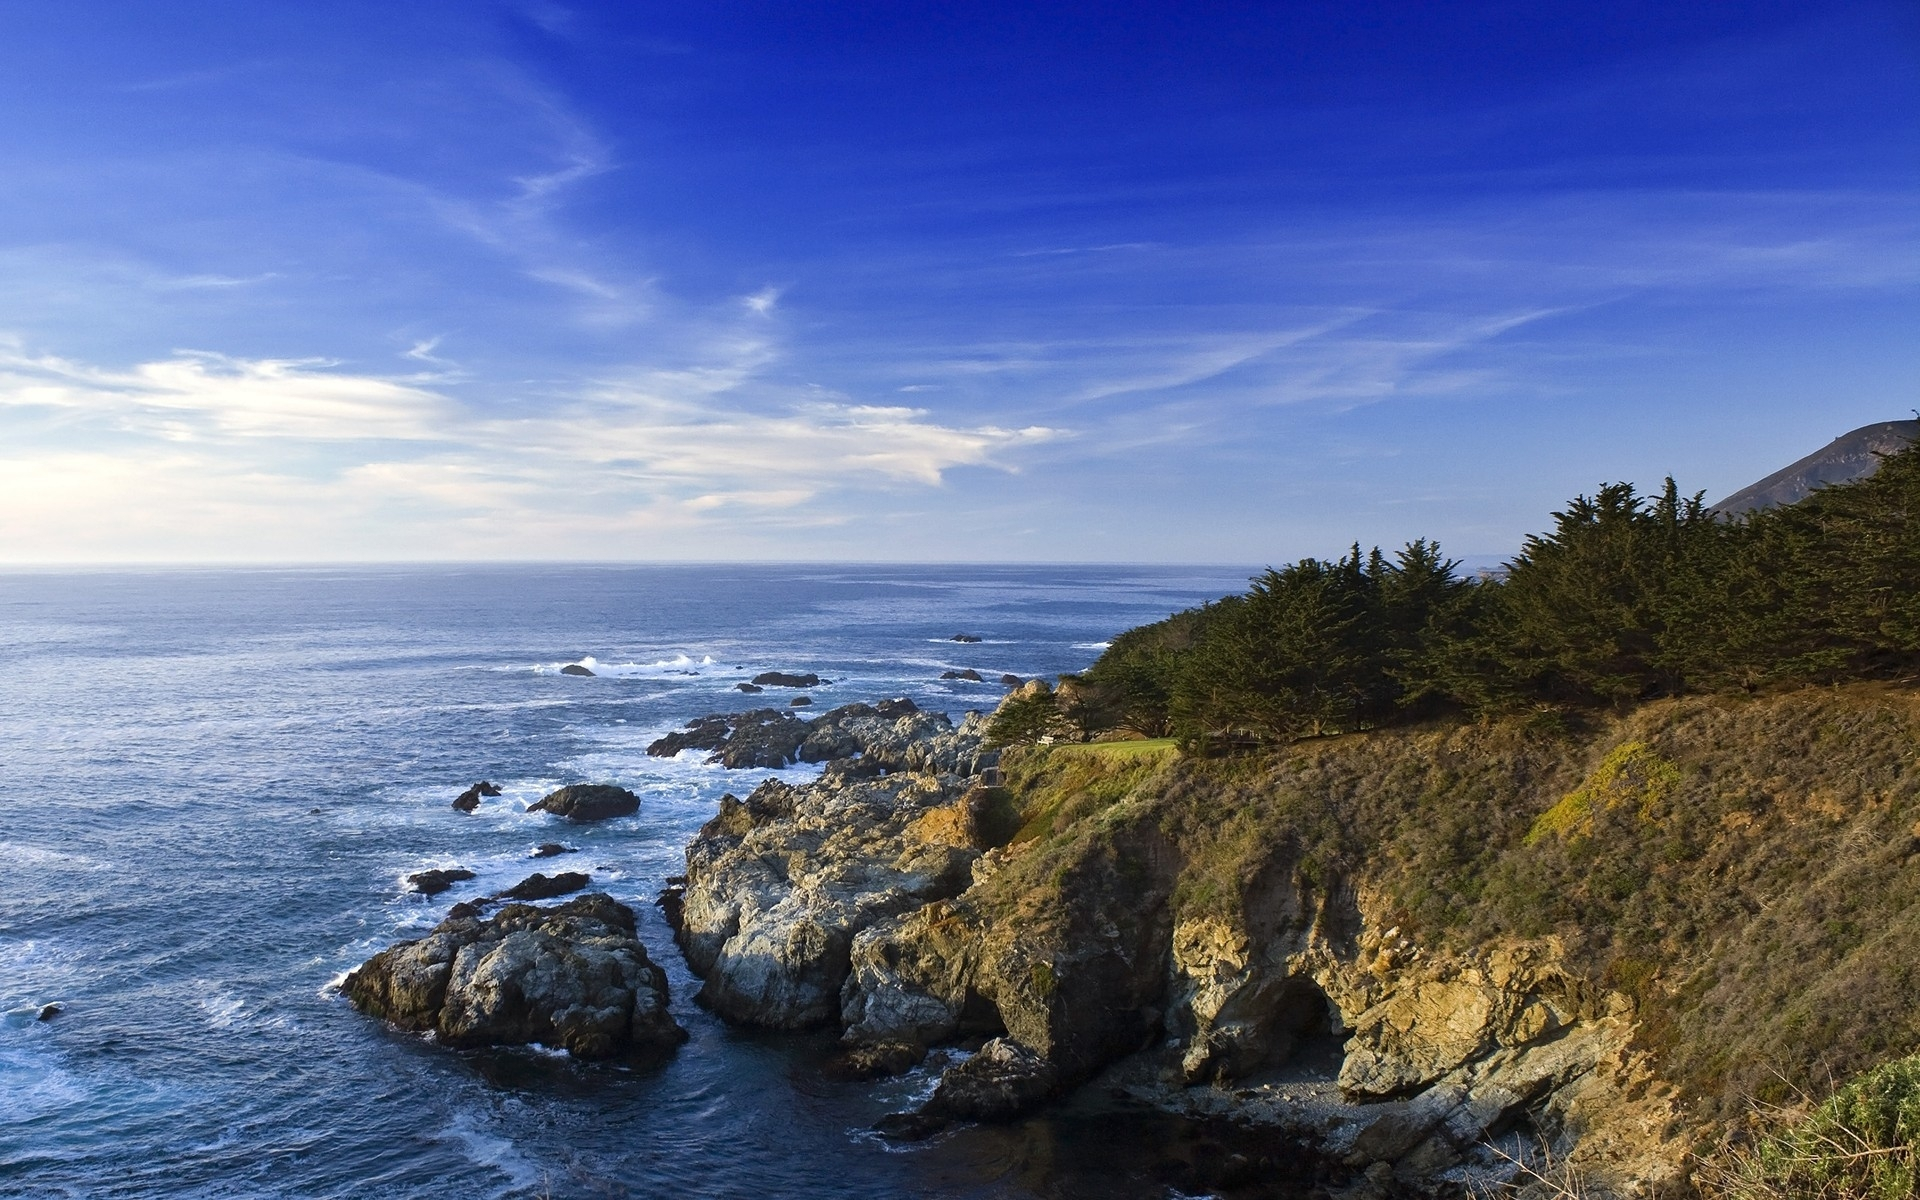 California Coast Line Ocean wallpapers | California Coast ...